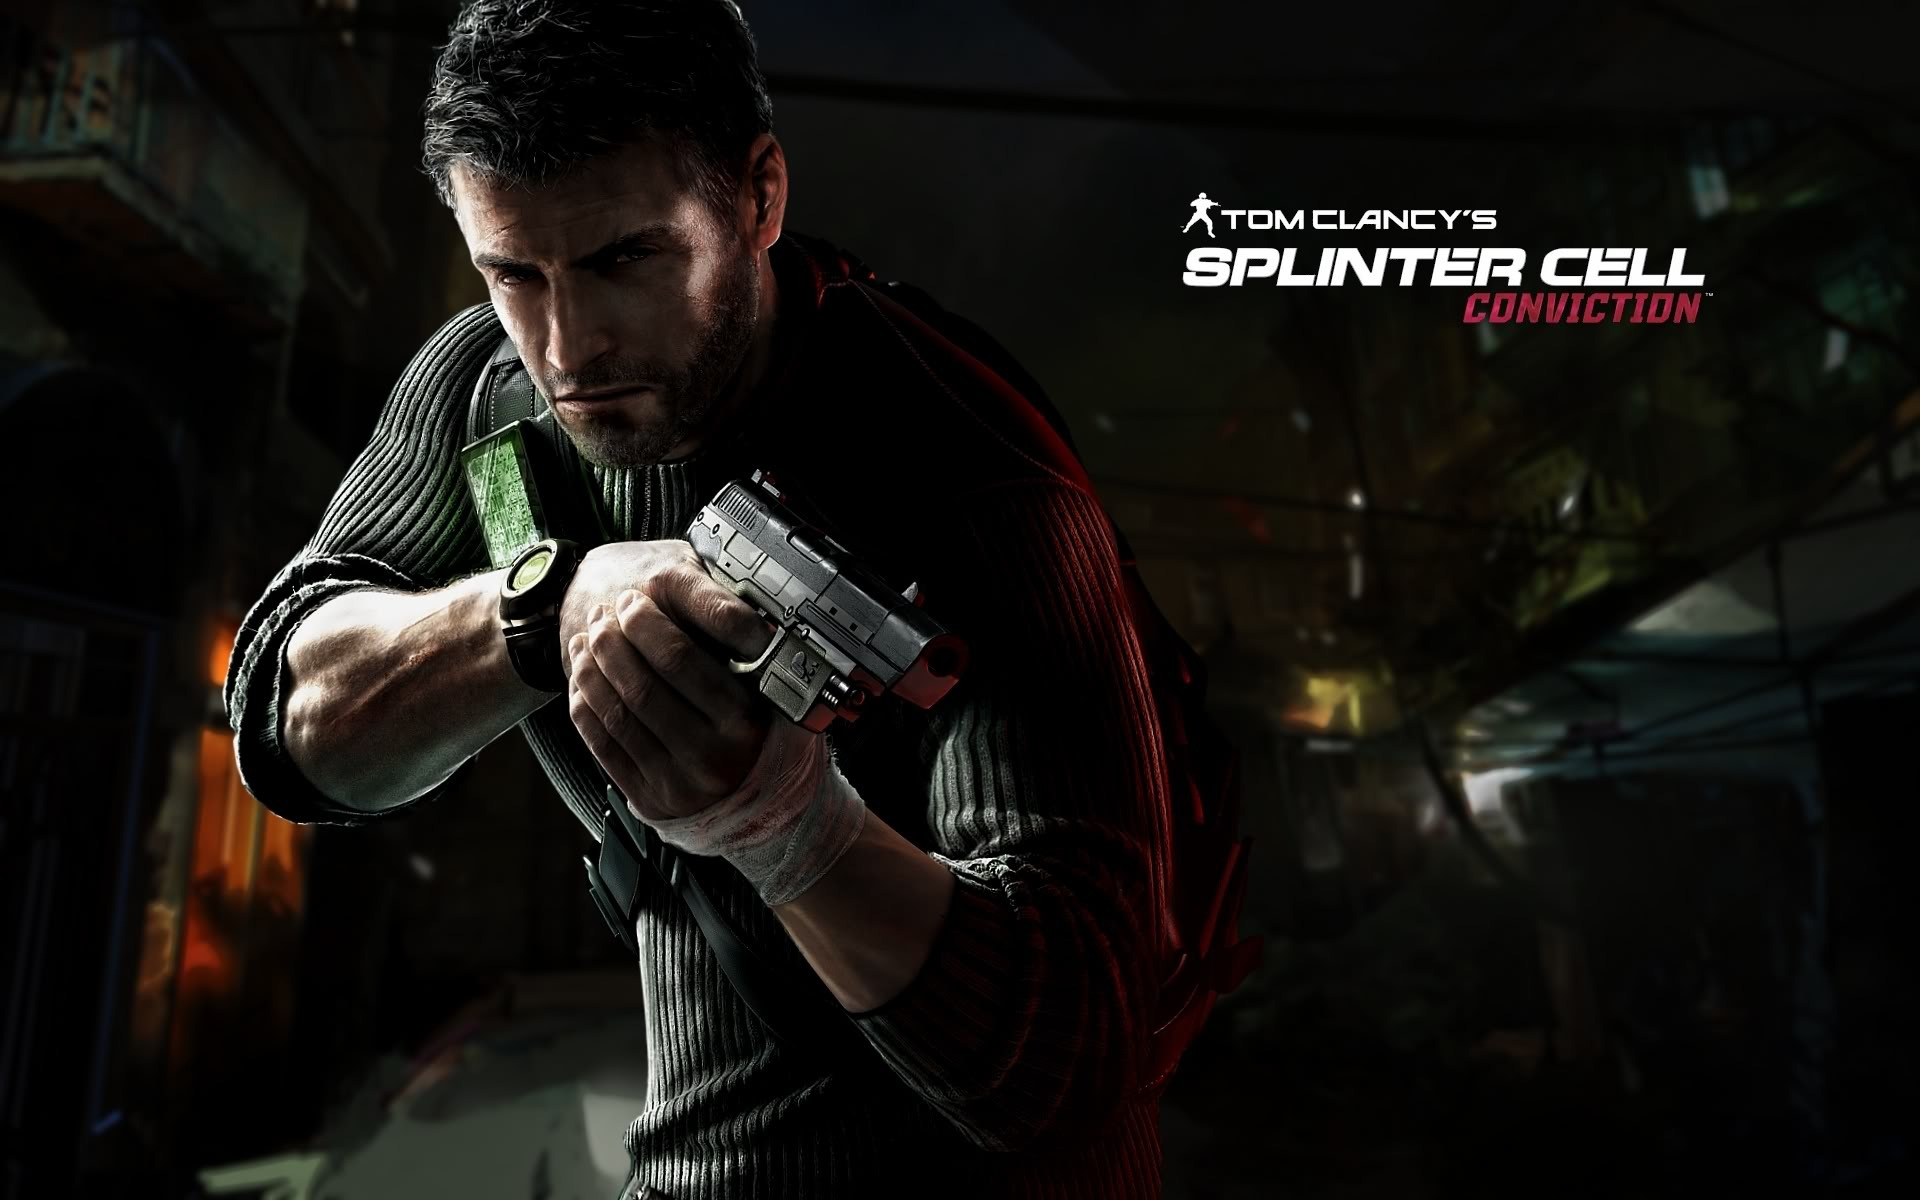 Splinter Cell Conviction dejo de funcionar solucion 2016